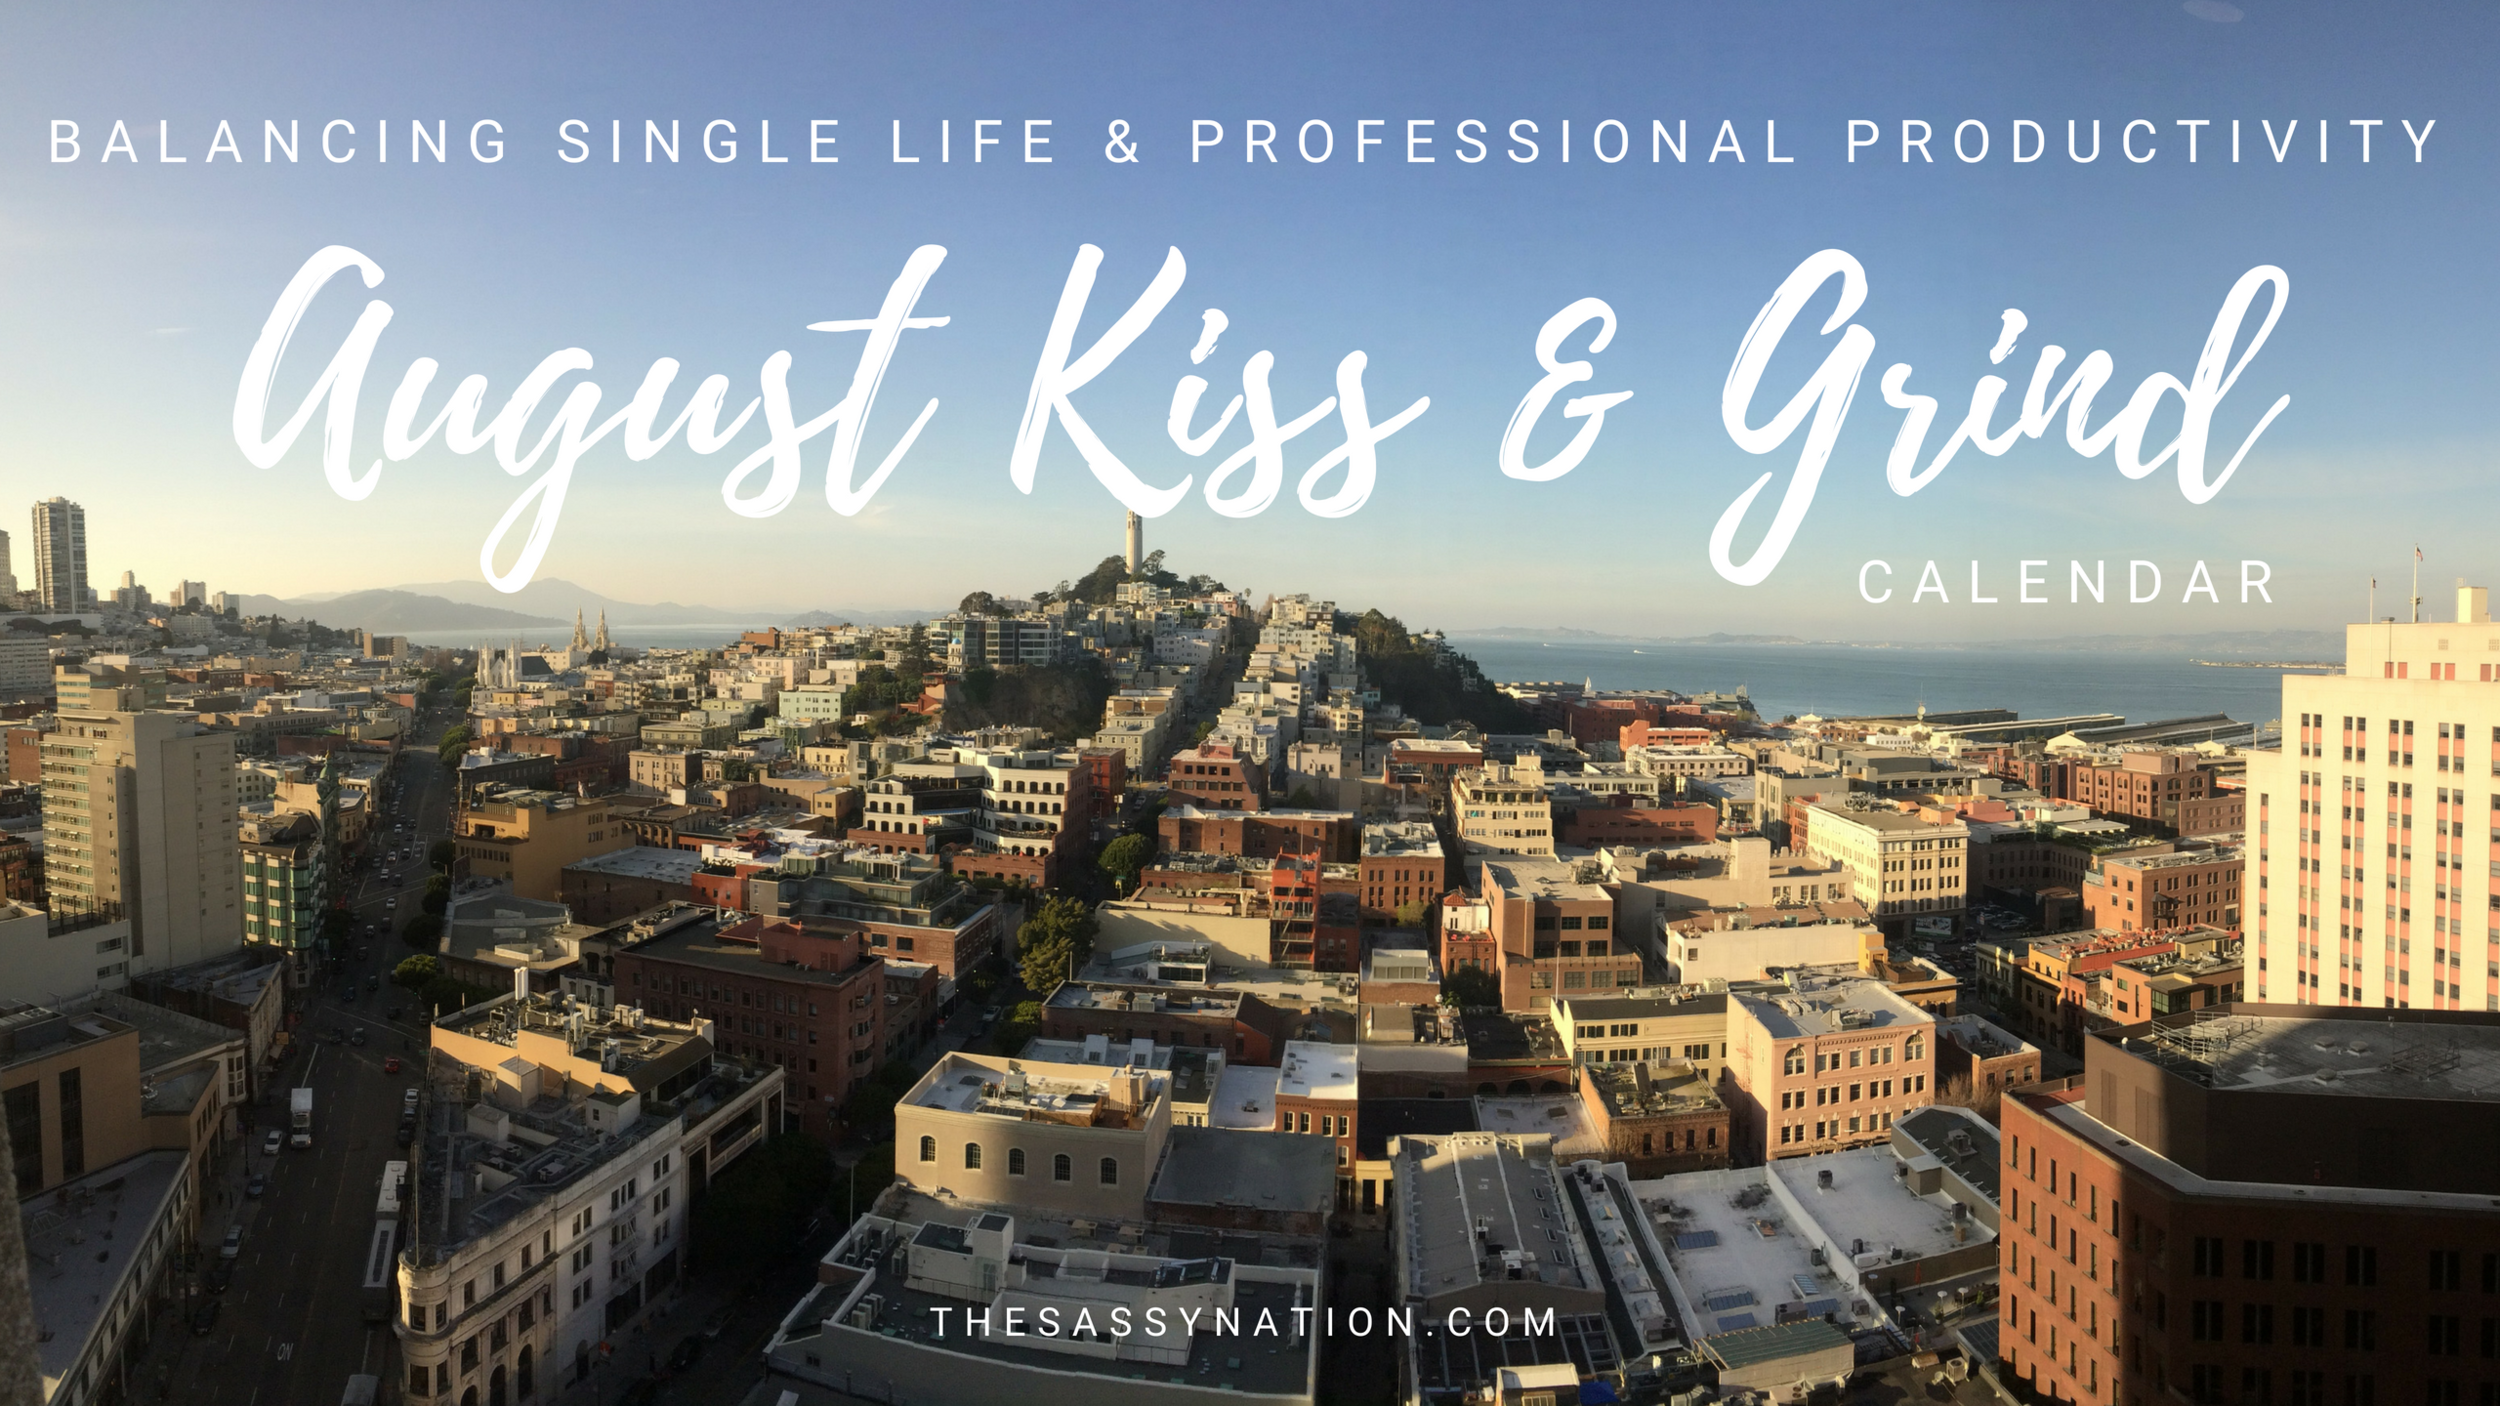 Finding balance between having a personal life & better professional productivity  |  TheSassyNation